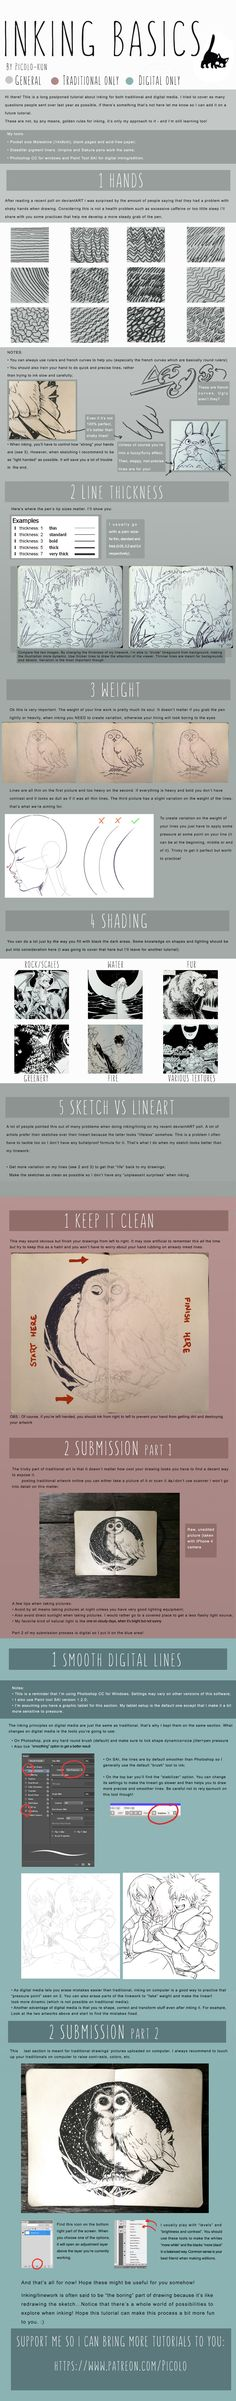 Inking Tutorial by Picolo-kun.deviantart.com on @DeviantArt